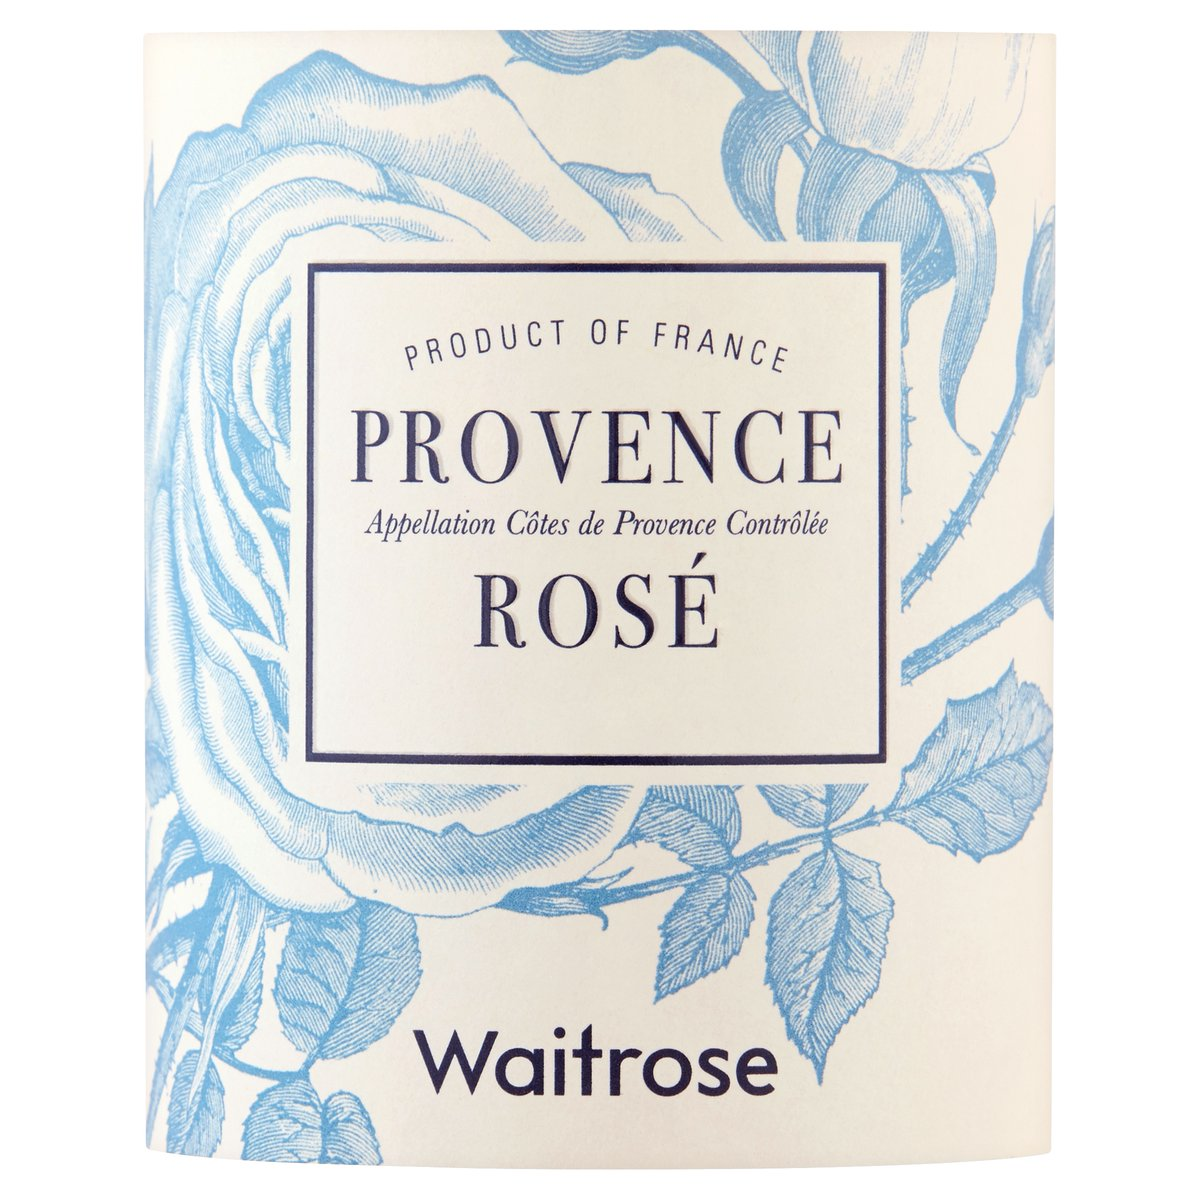 My latest wine of the week is a cracking own-label rosé from @waitrose, currently on offer at £6.74 as part of the supermarket's 25% off on six bottles deal.  https:// timatkin.com/tasting-notes/ waitrose-blueprint-provence-rose/  …  #rosé  #drinkbetterwine #wineoftheweek<br>http://pic.twitter.com/qoZEo2gE1Q